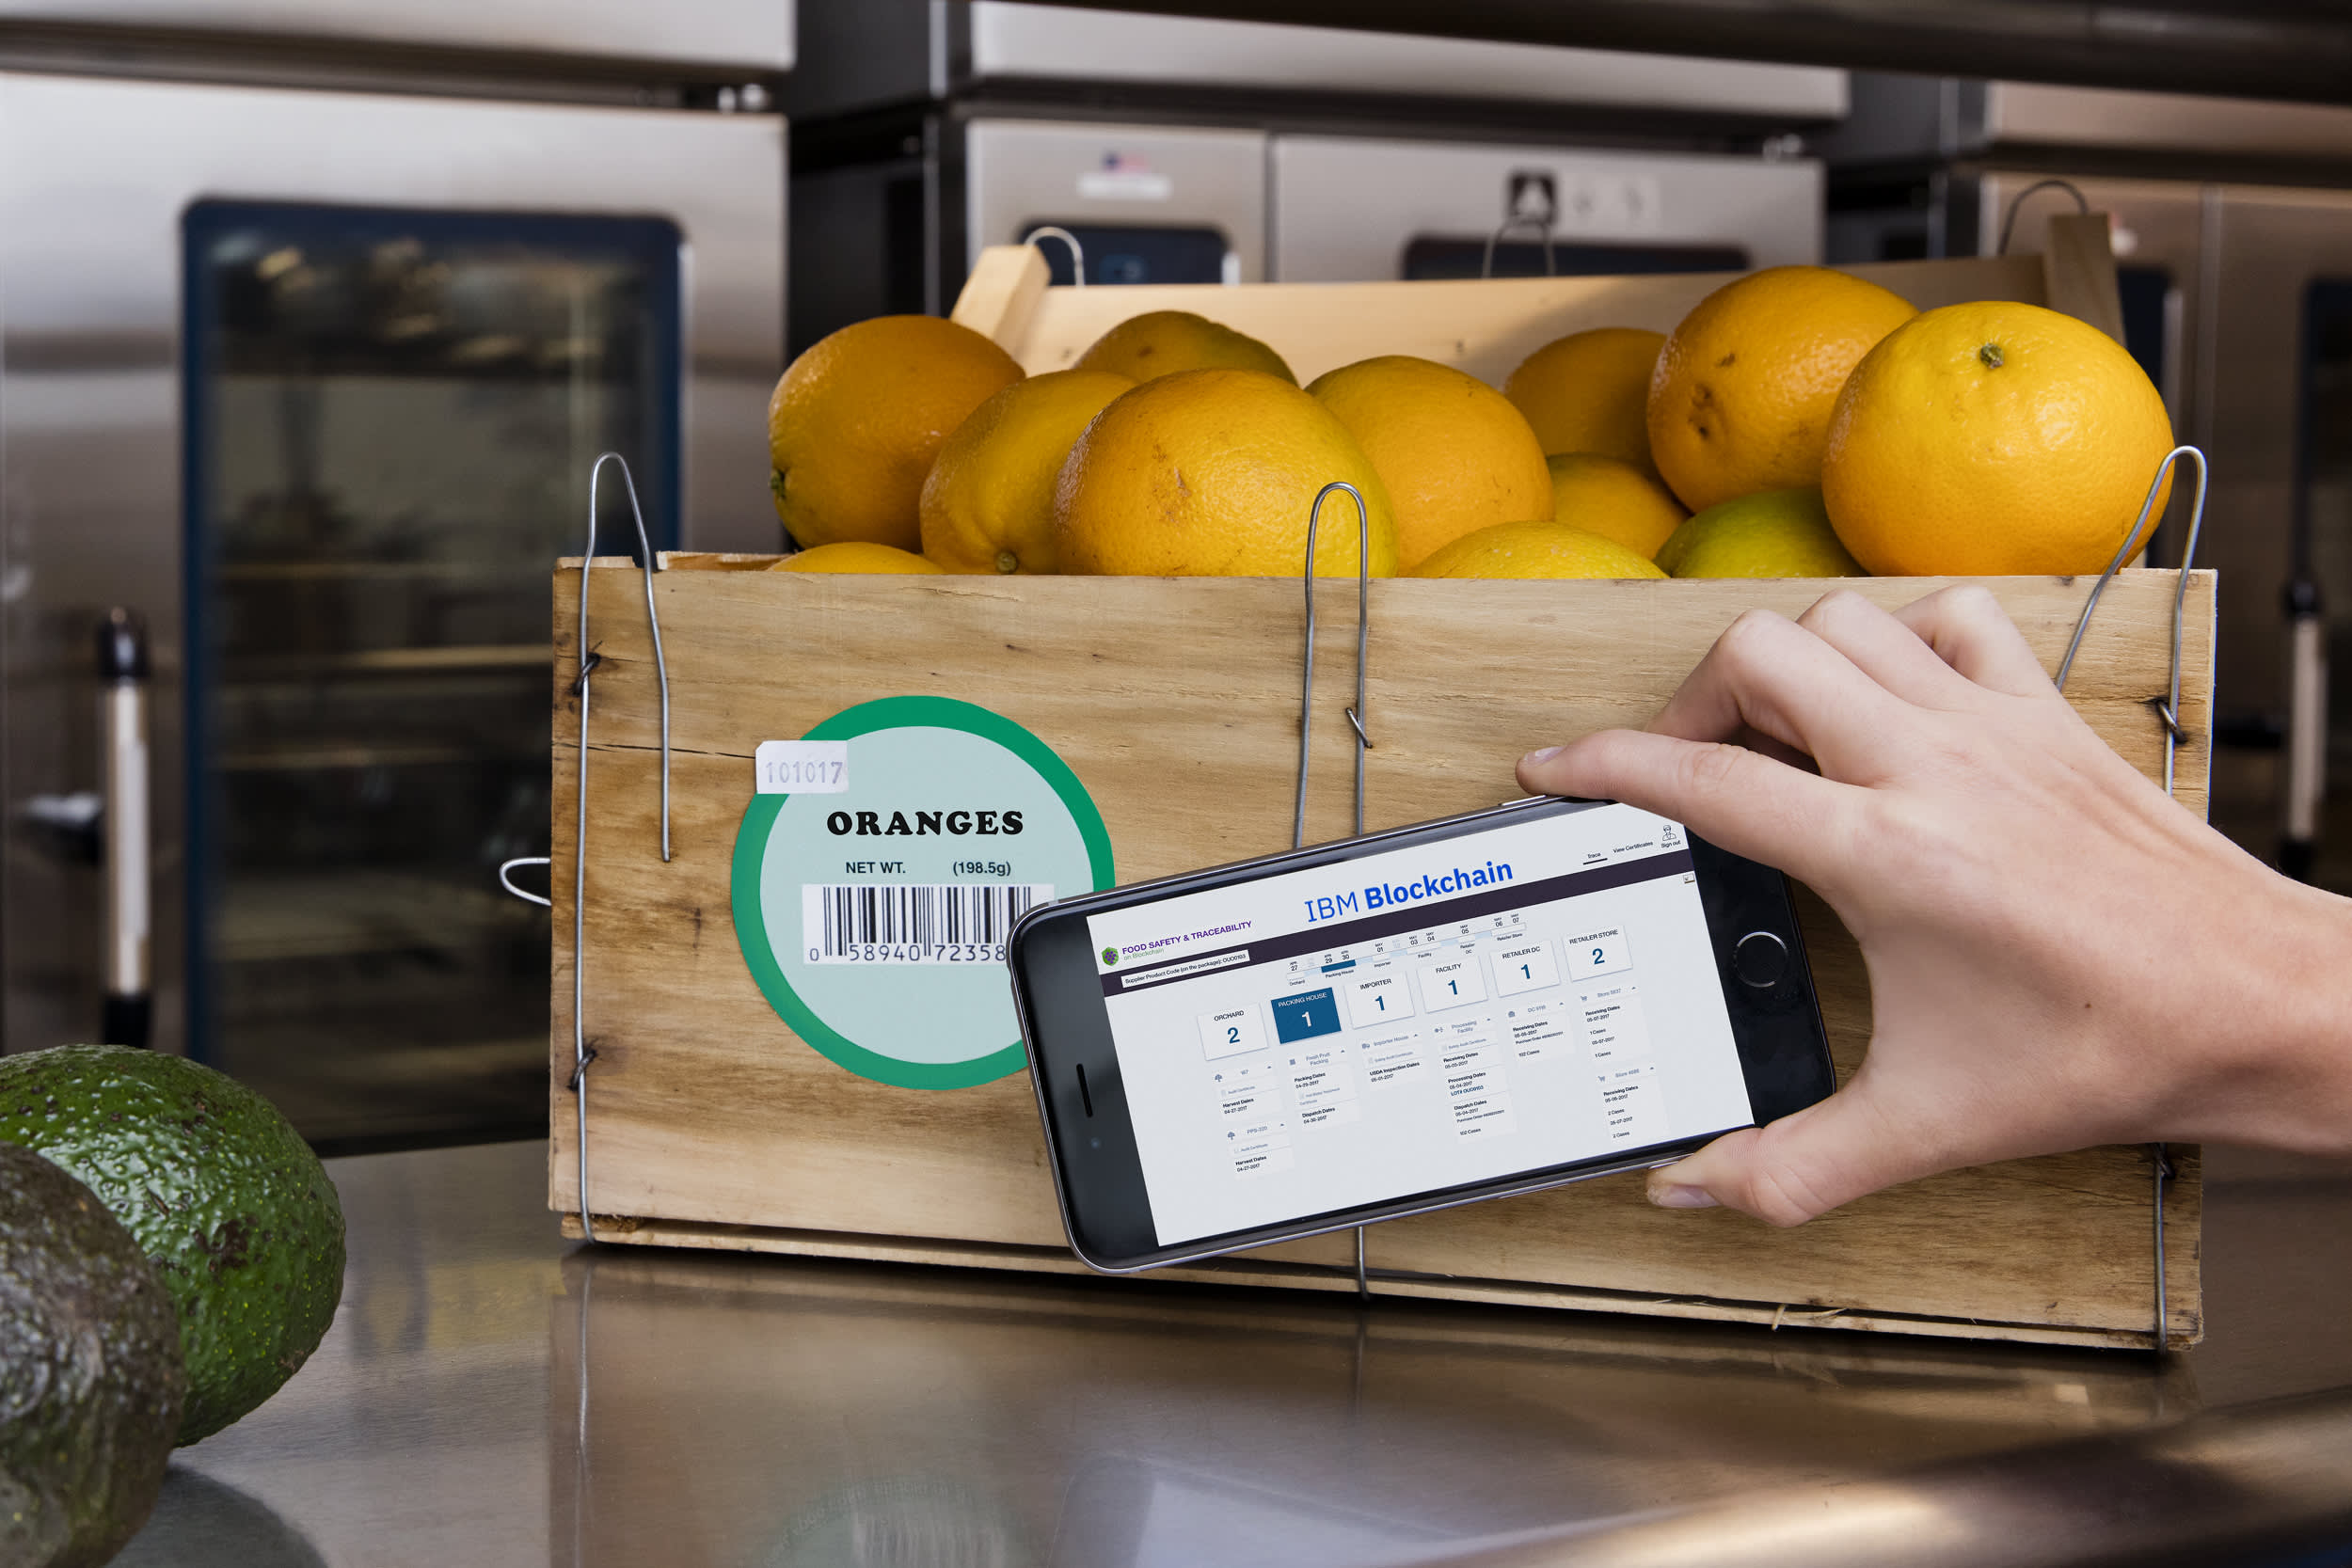 IBM partners with Nestle, Unilever and other food giants to trace food contamination with blockchain